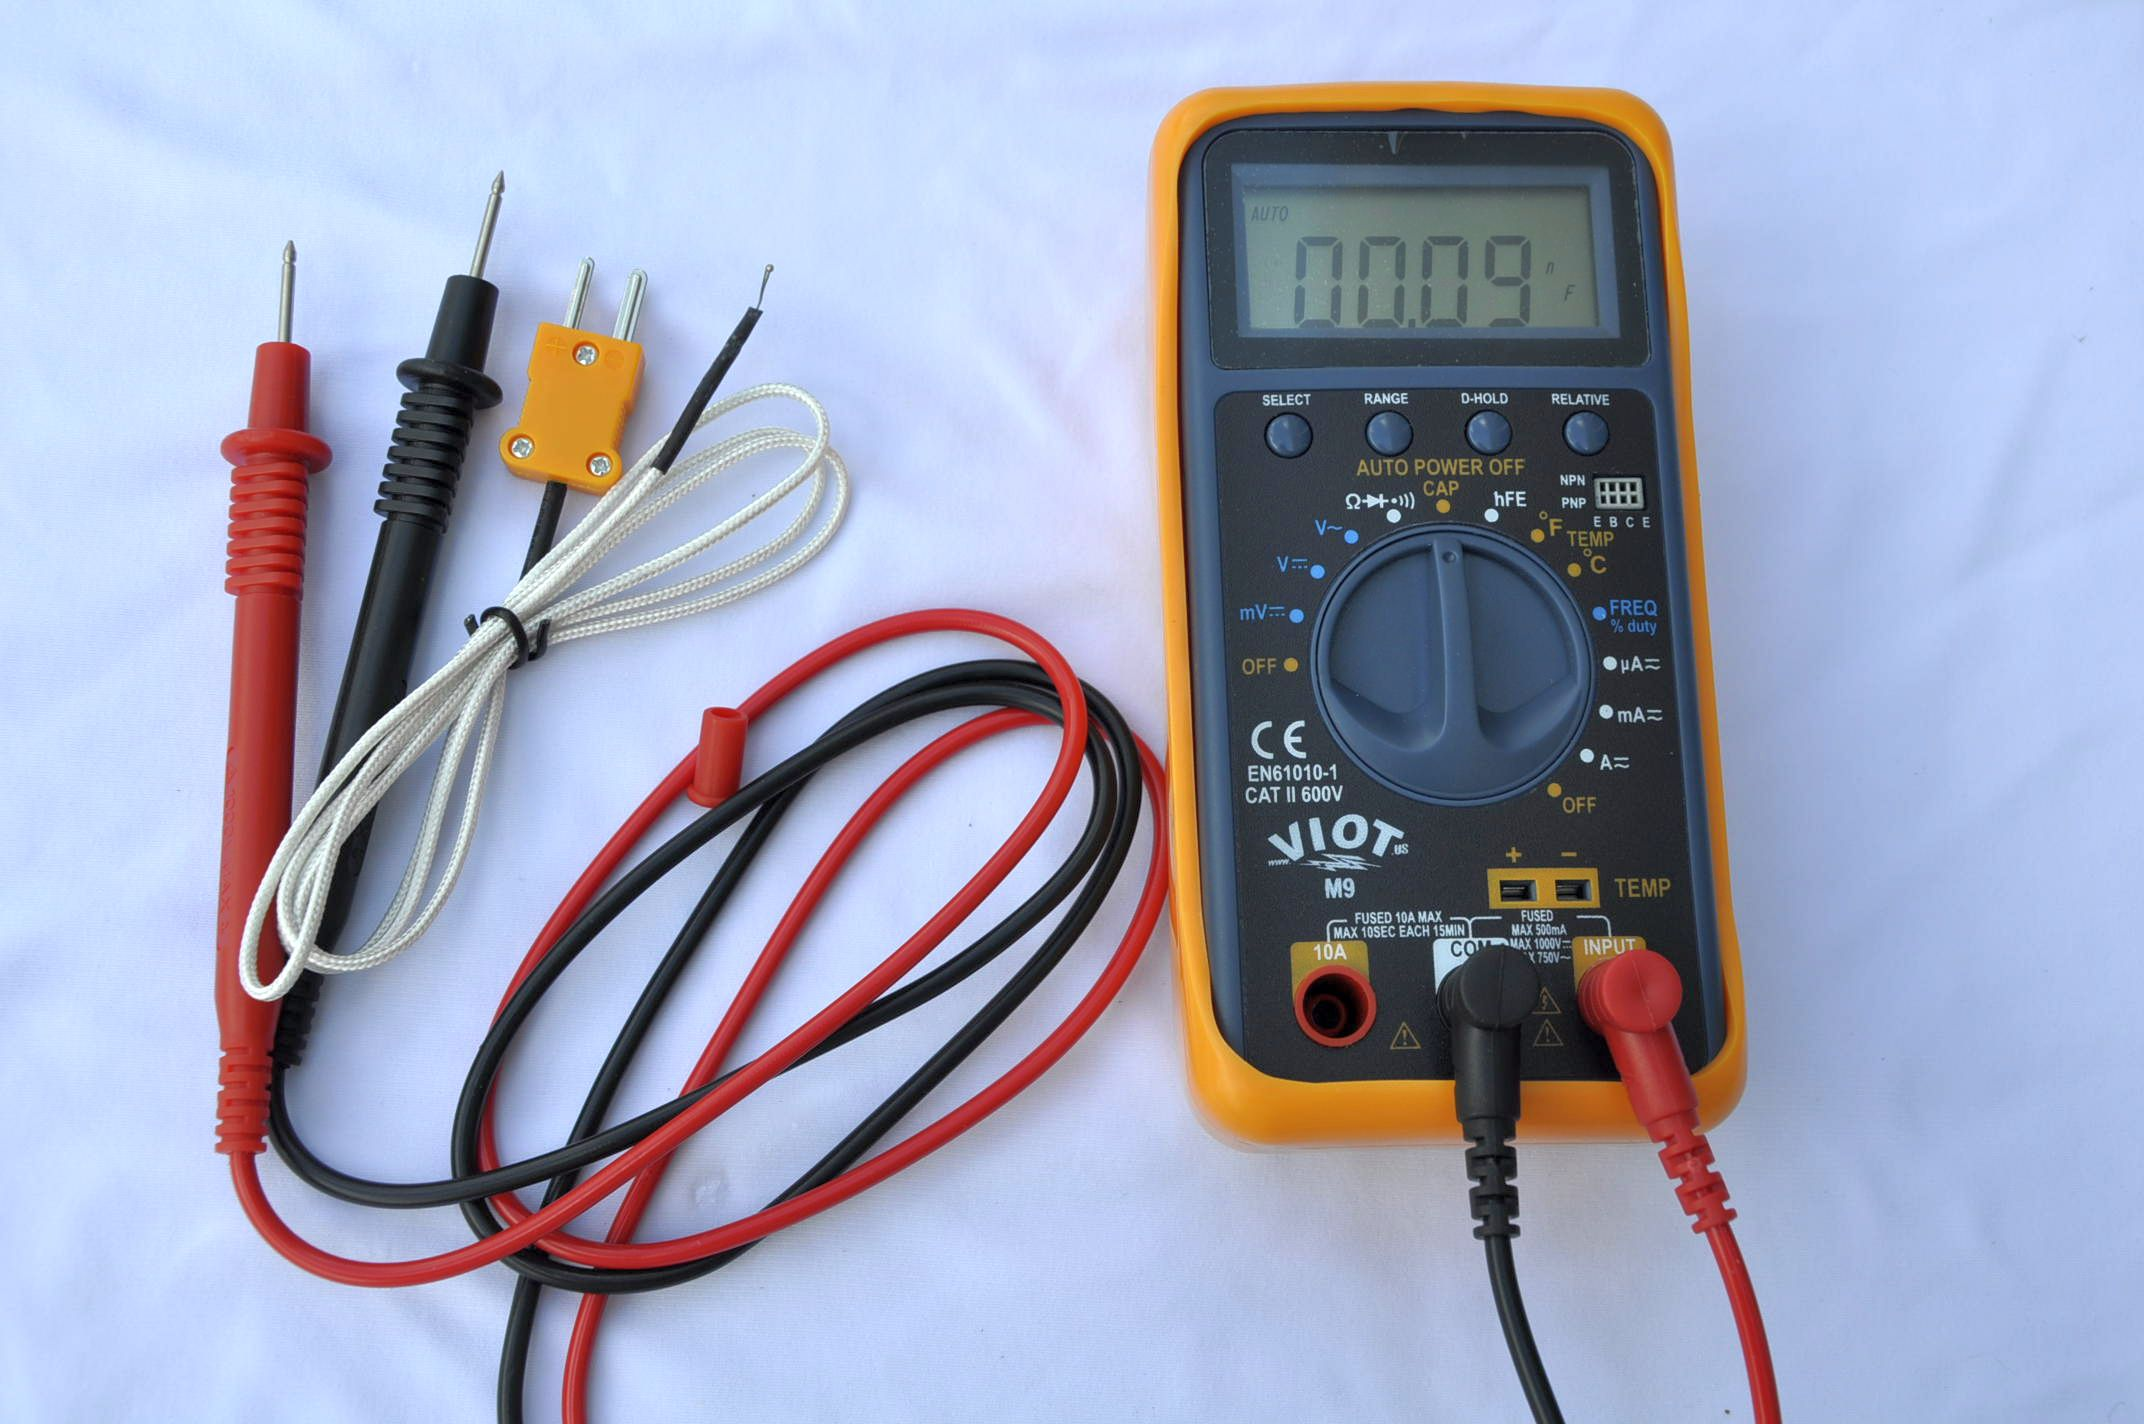 Professional Hvac Toolac Dc Digital Multimeter Dmm With Capacitor Test In Circuit Tester To 100uf Type K Thermocouple Heavy Duty Leads Holster Free Shipping